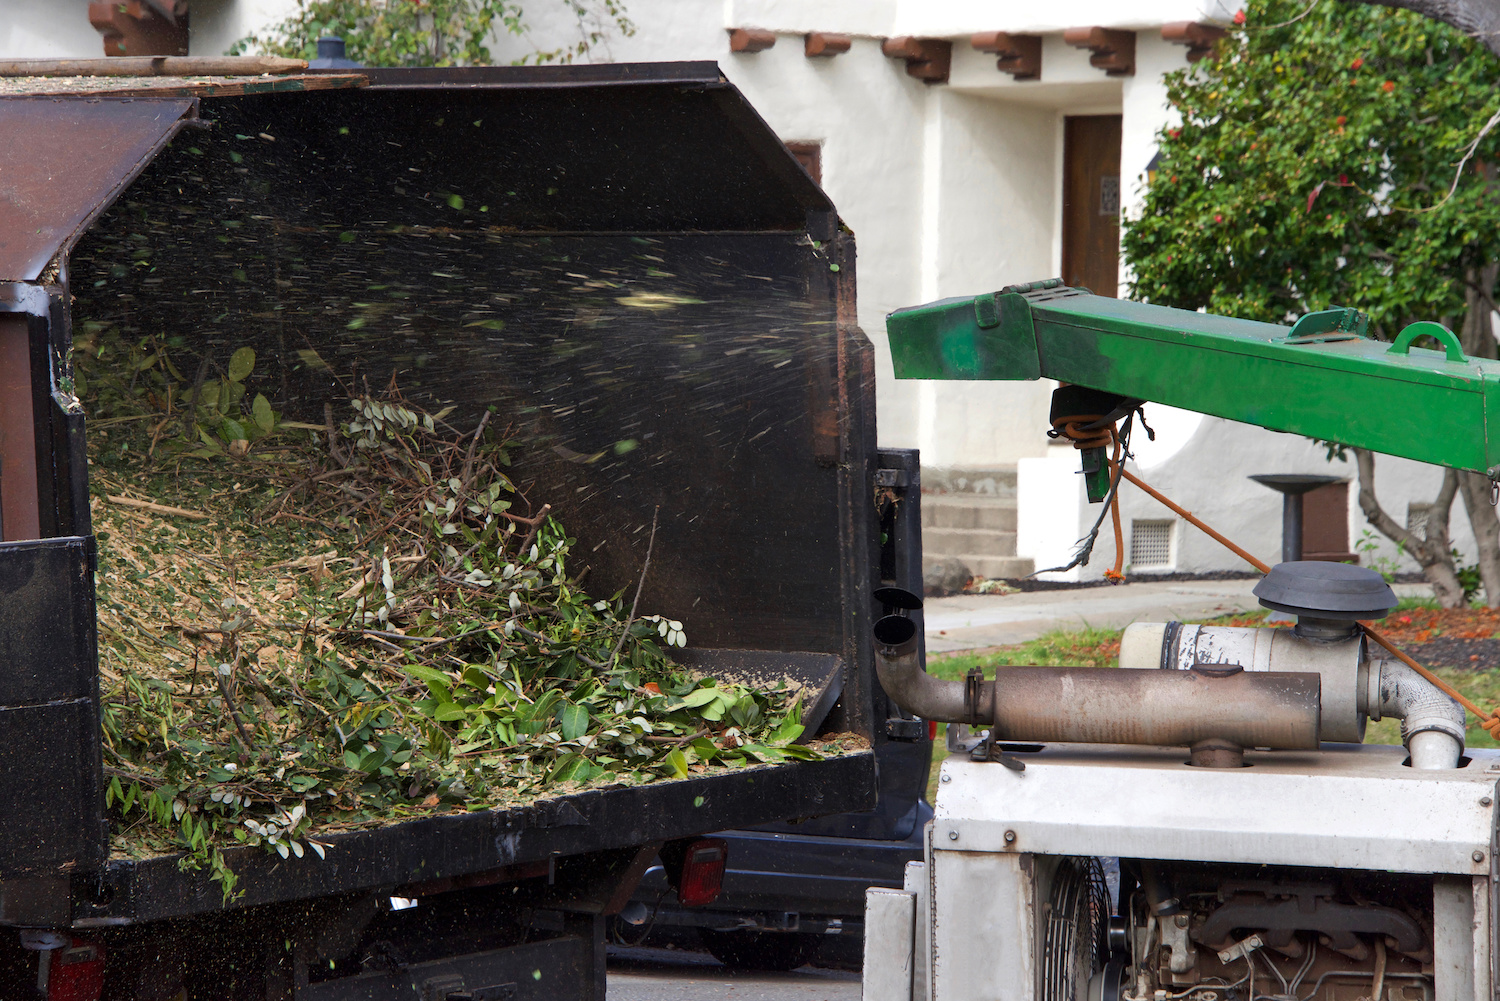 Wood chipper blowing tree branches cut up into the back of a truck. A tree chipper or wood chipper is a portable machine used for reducing wood into smaller wood chips.